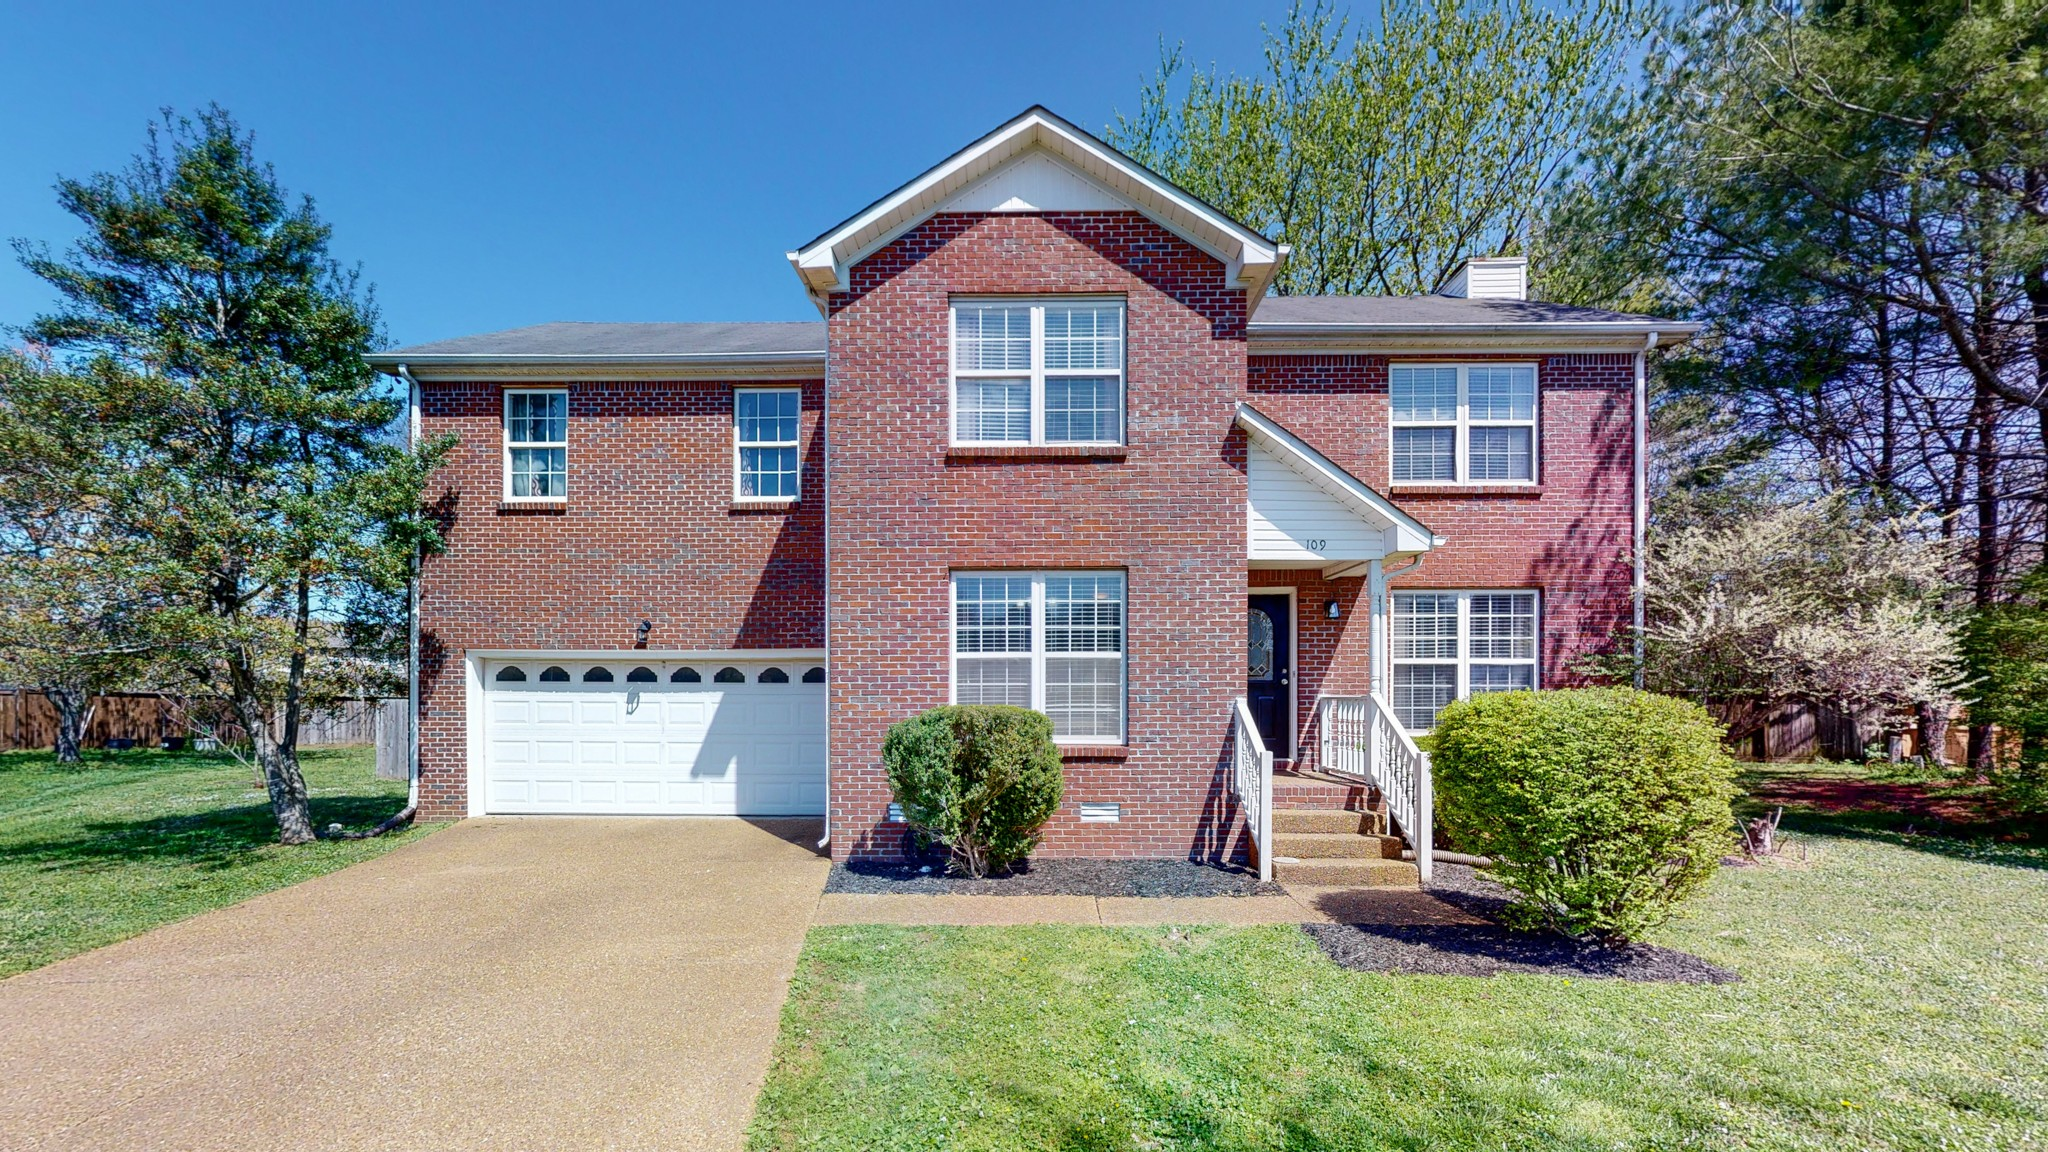 109 Green Tree Ct Property Photo - Columbia, TN real estate listing